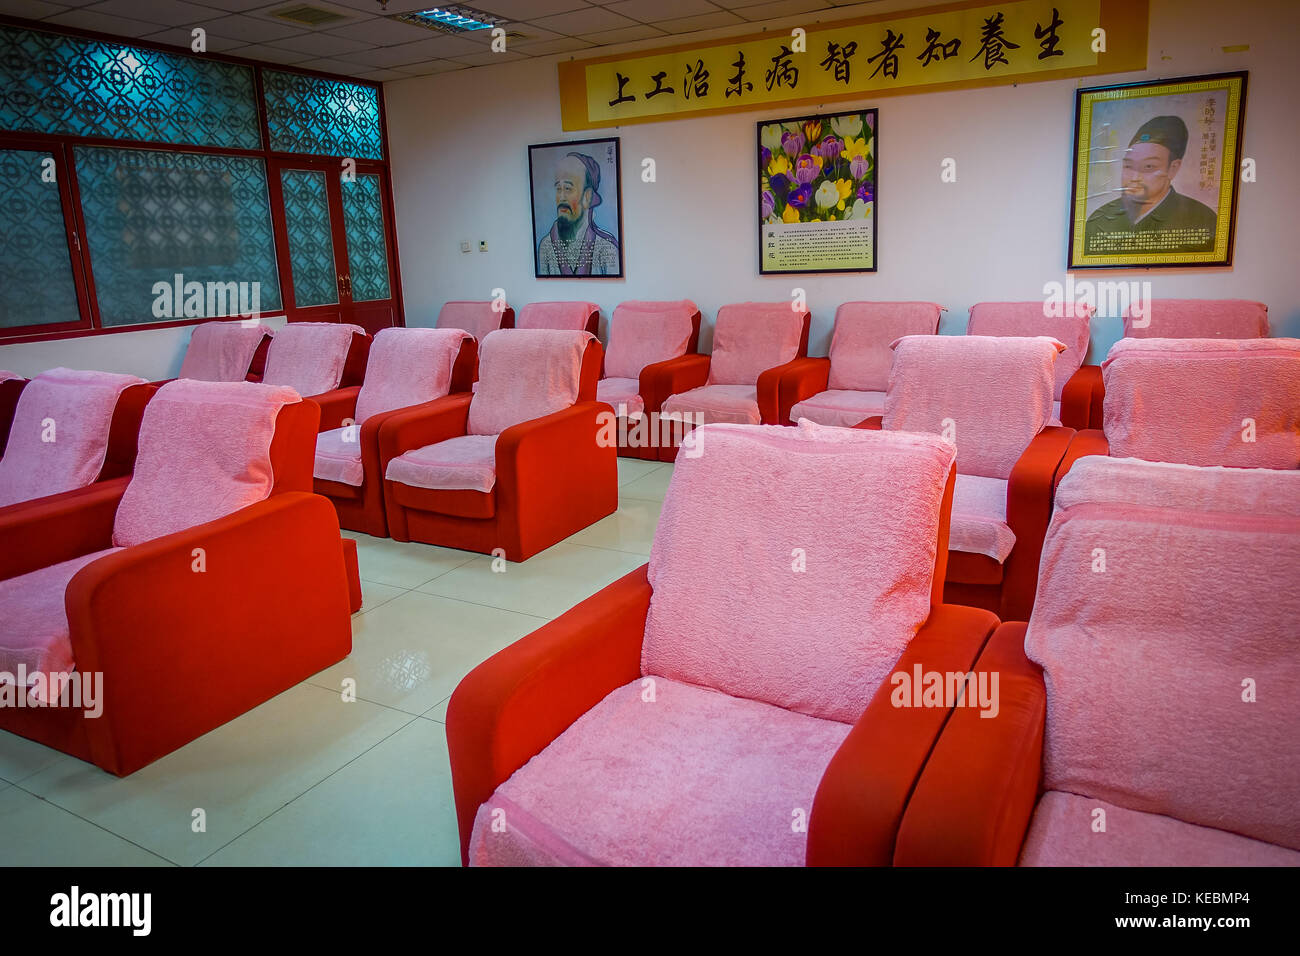 BEIJING, CHINA - 29 JANUARY, 2017: Chinese massage clinic with room full of comfortable chairs used for giving foot - Stock Image